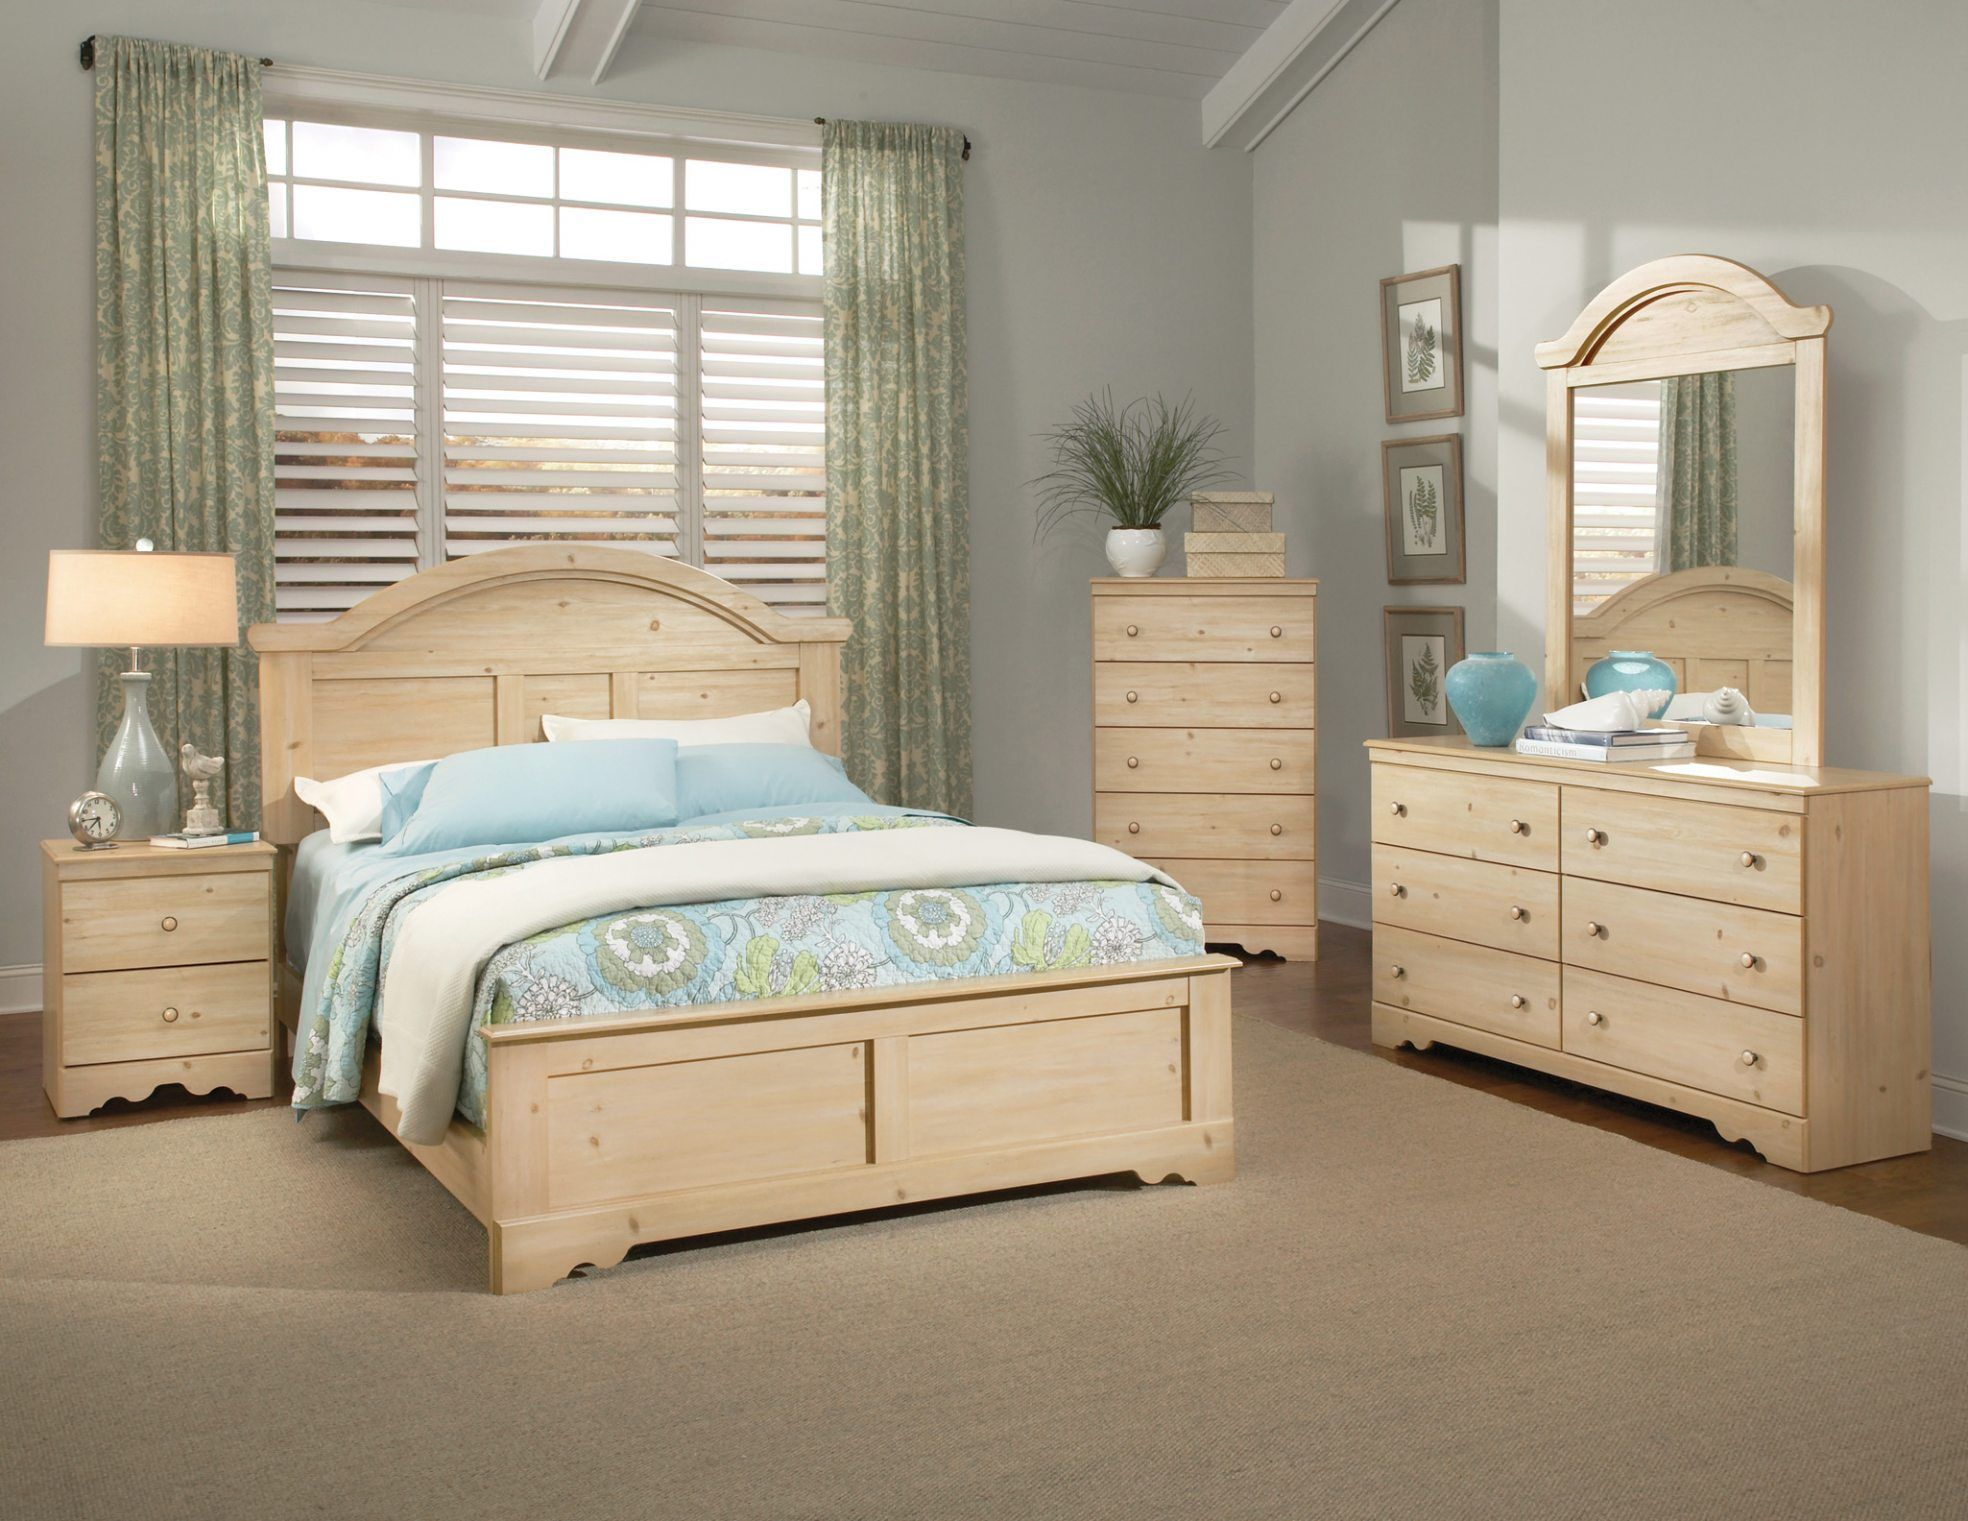 The Important Things When Selecting Pine Bedroom Furniture Set